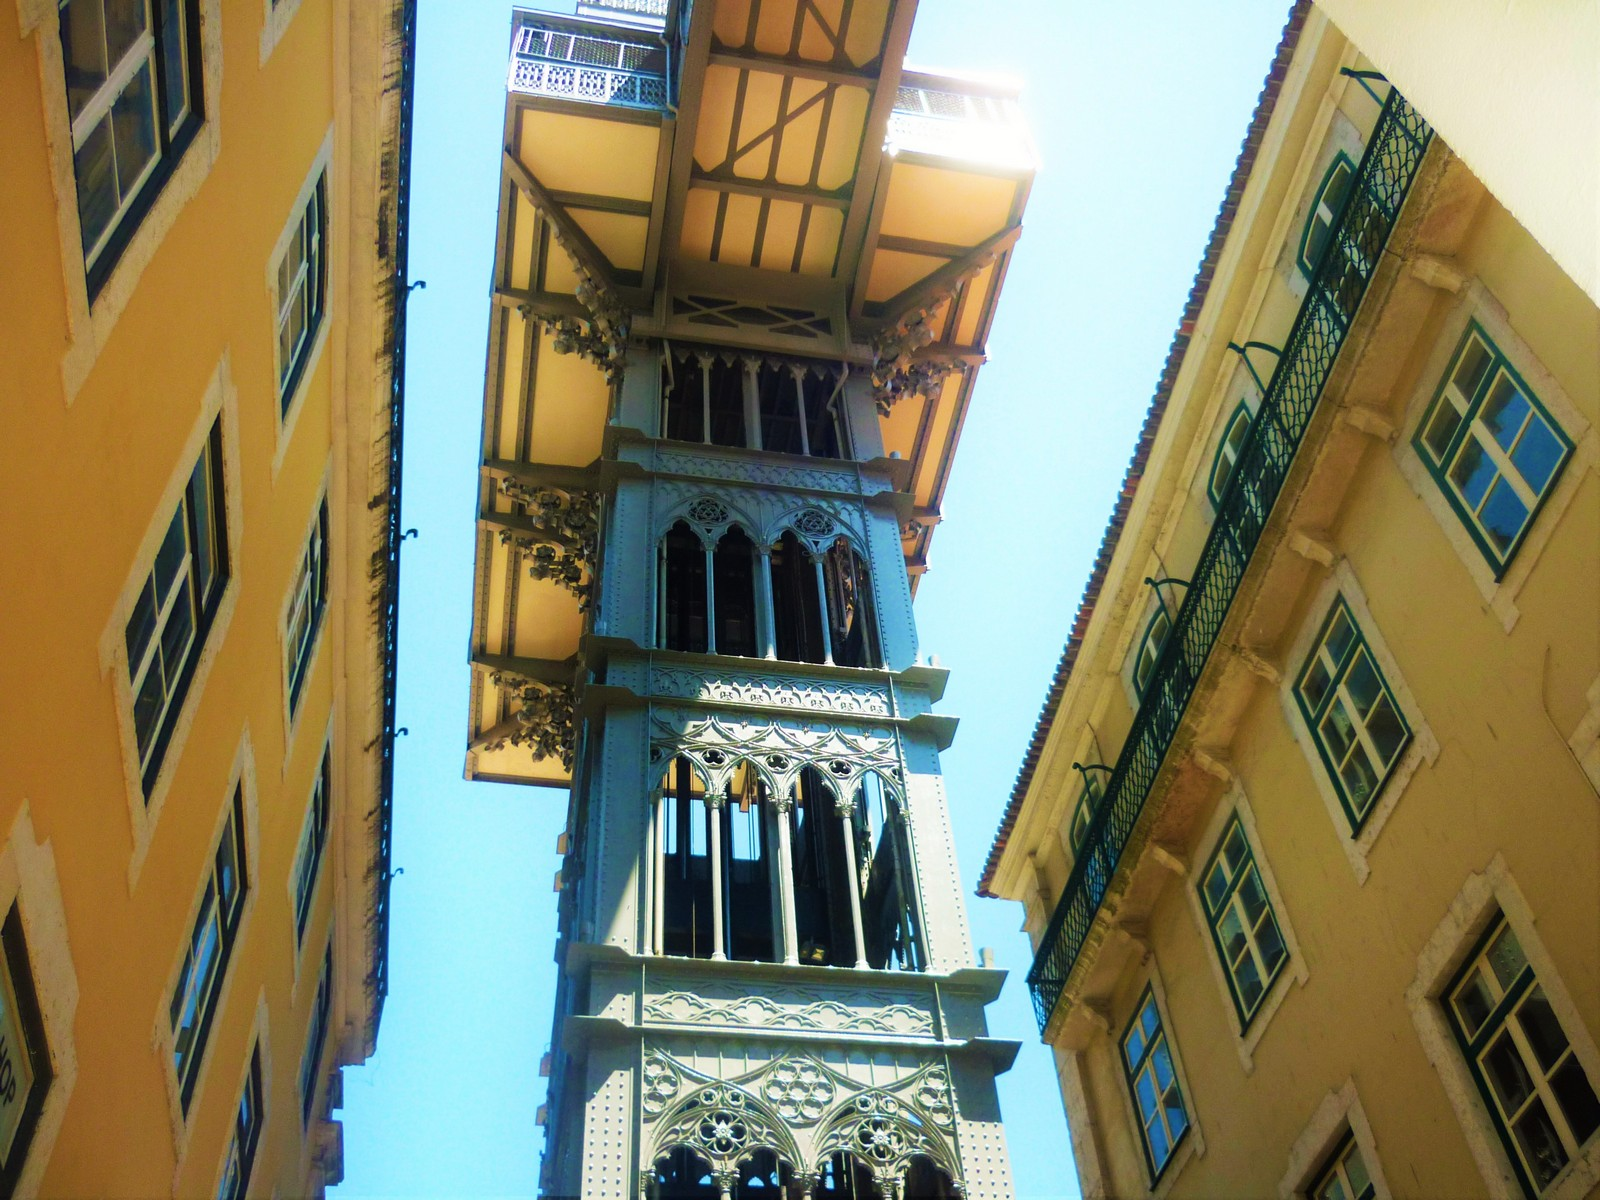 Santa Justa Lift in Lisbon by Essencia da Latitude